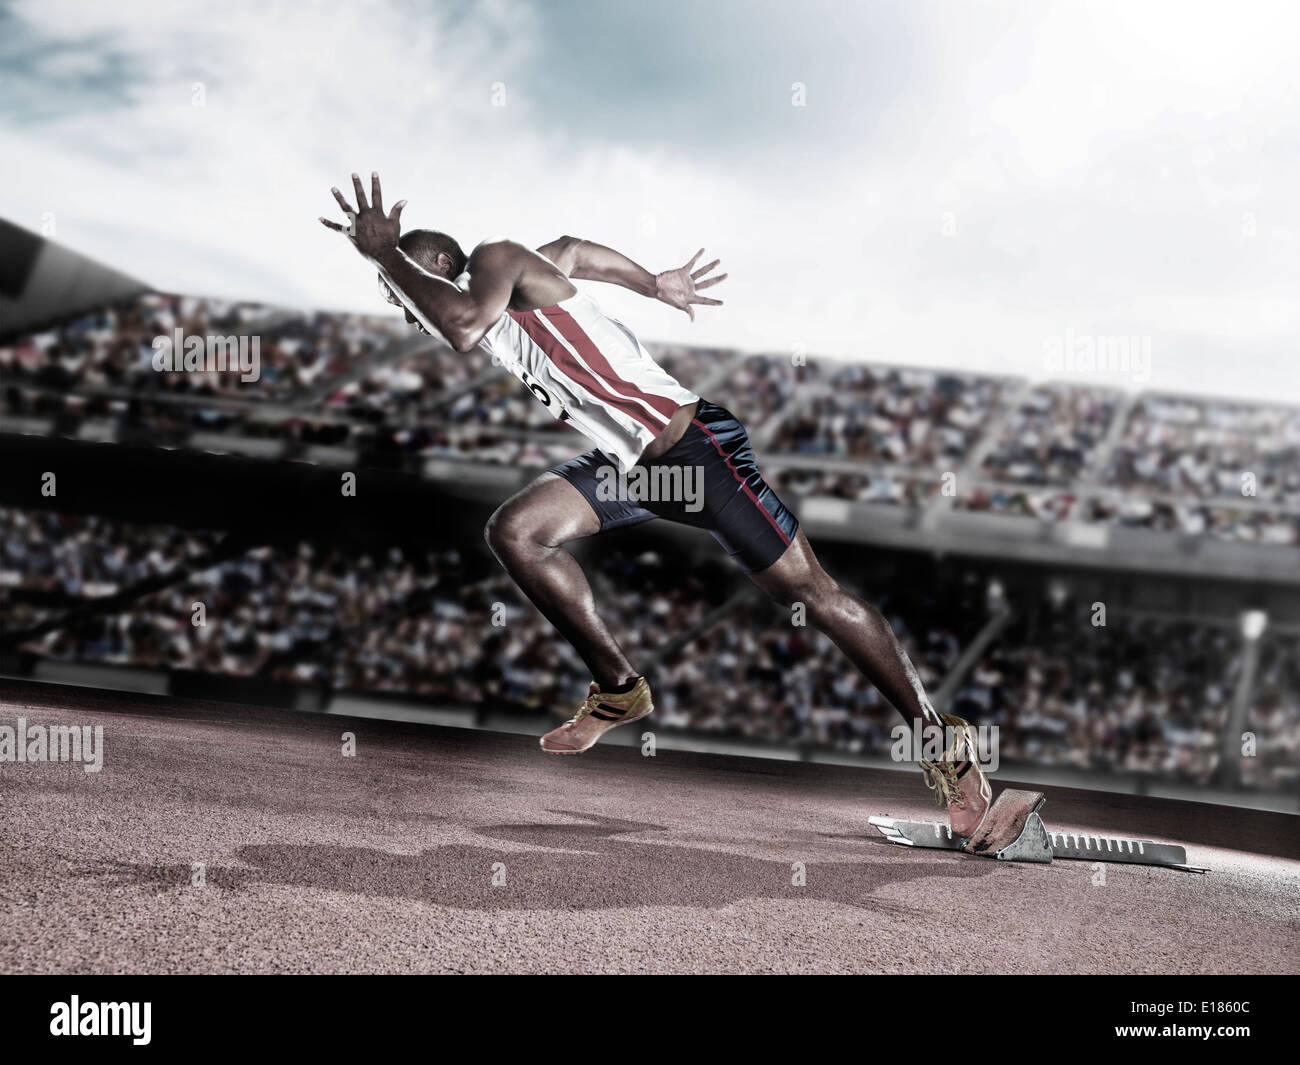 Runner taking off from starting block on track - Stock Image